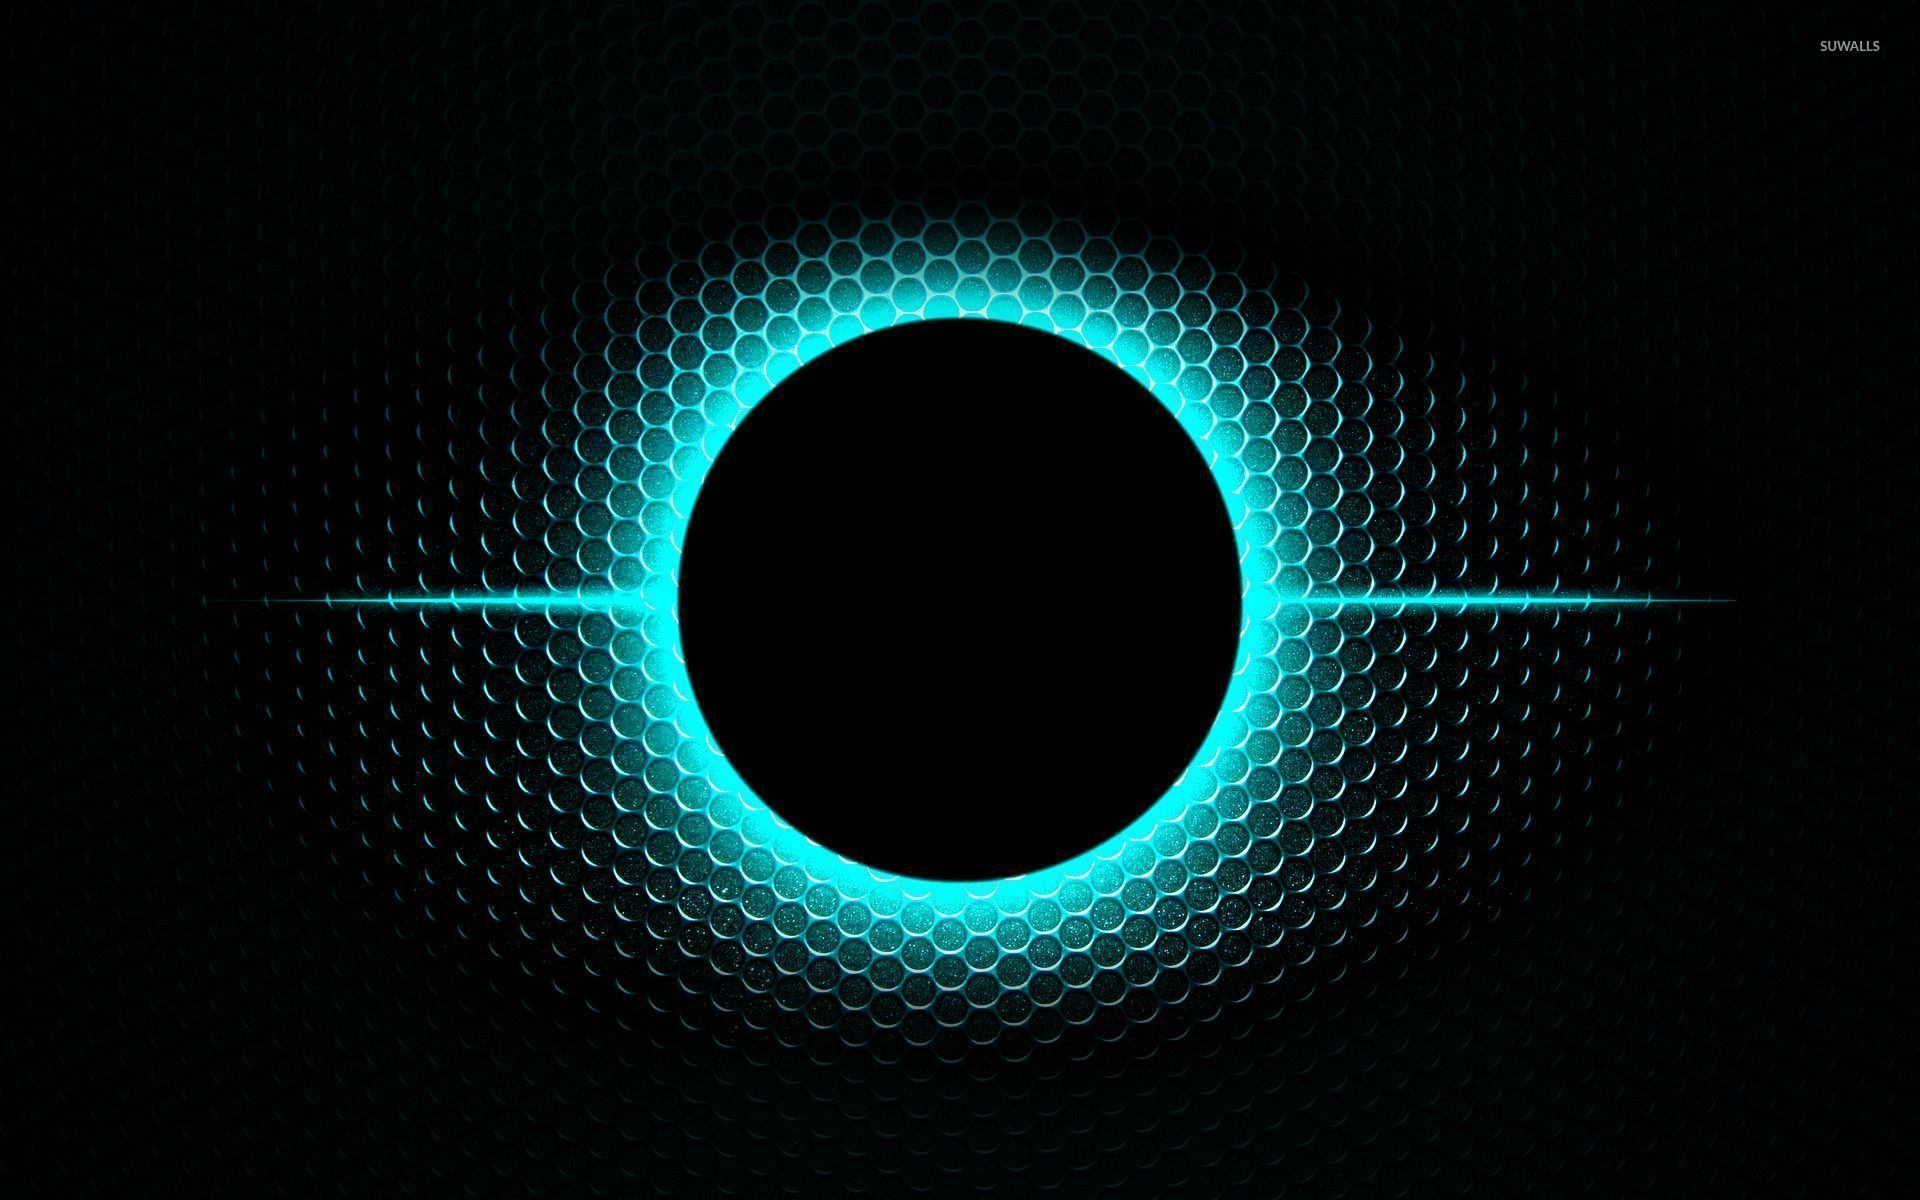 Glowing orb wallpaper   Abstract wallpapers   29769 1366x768